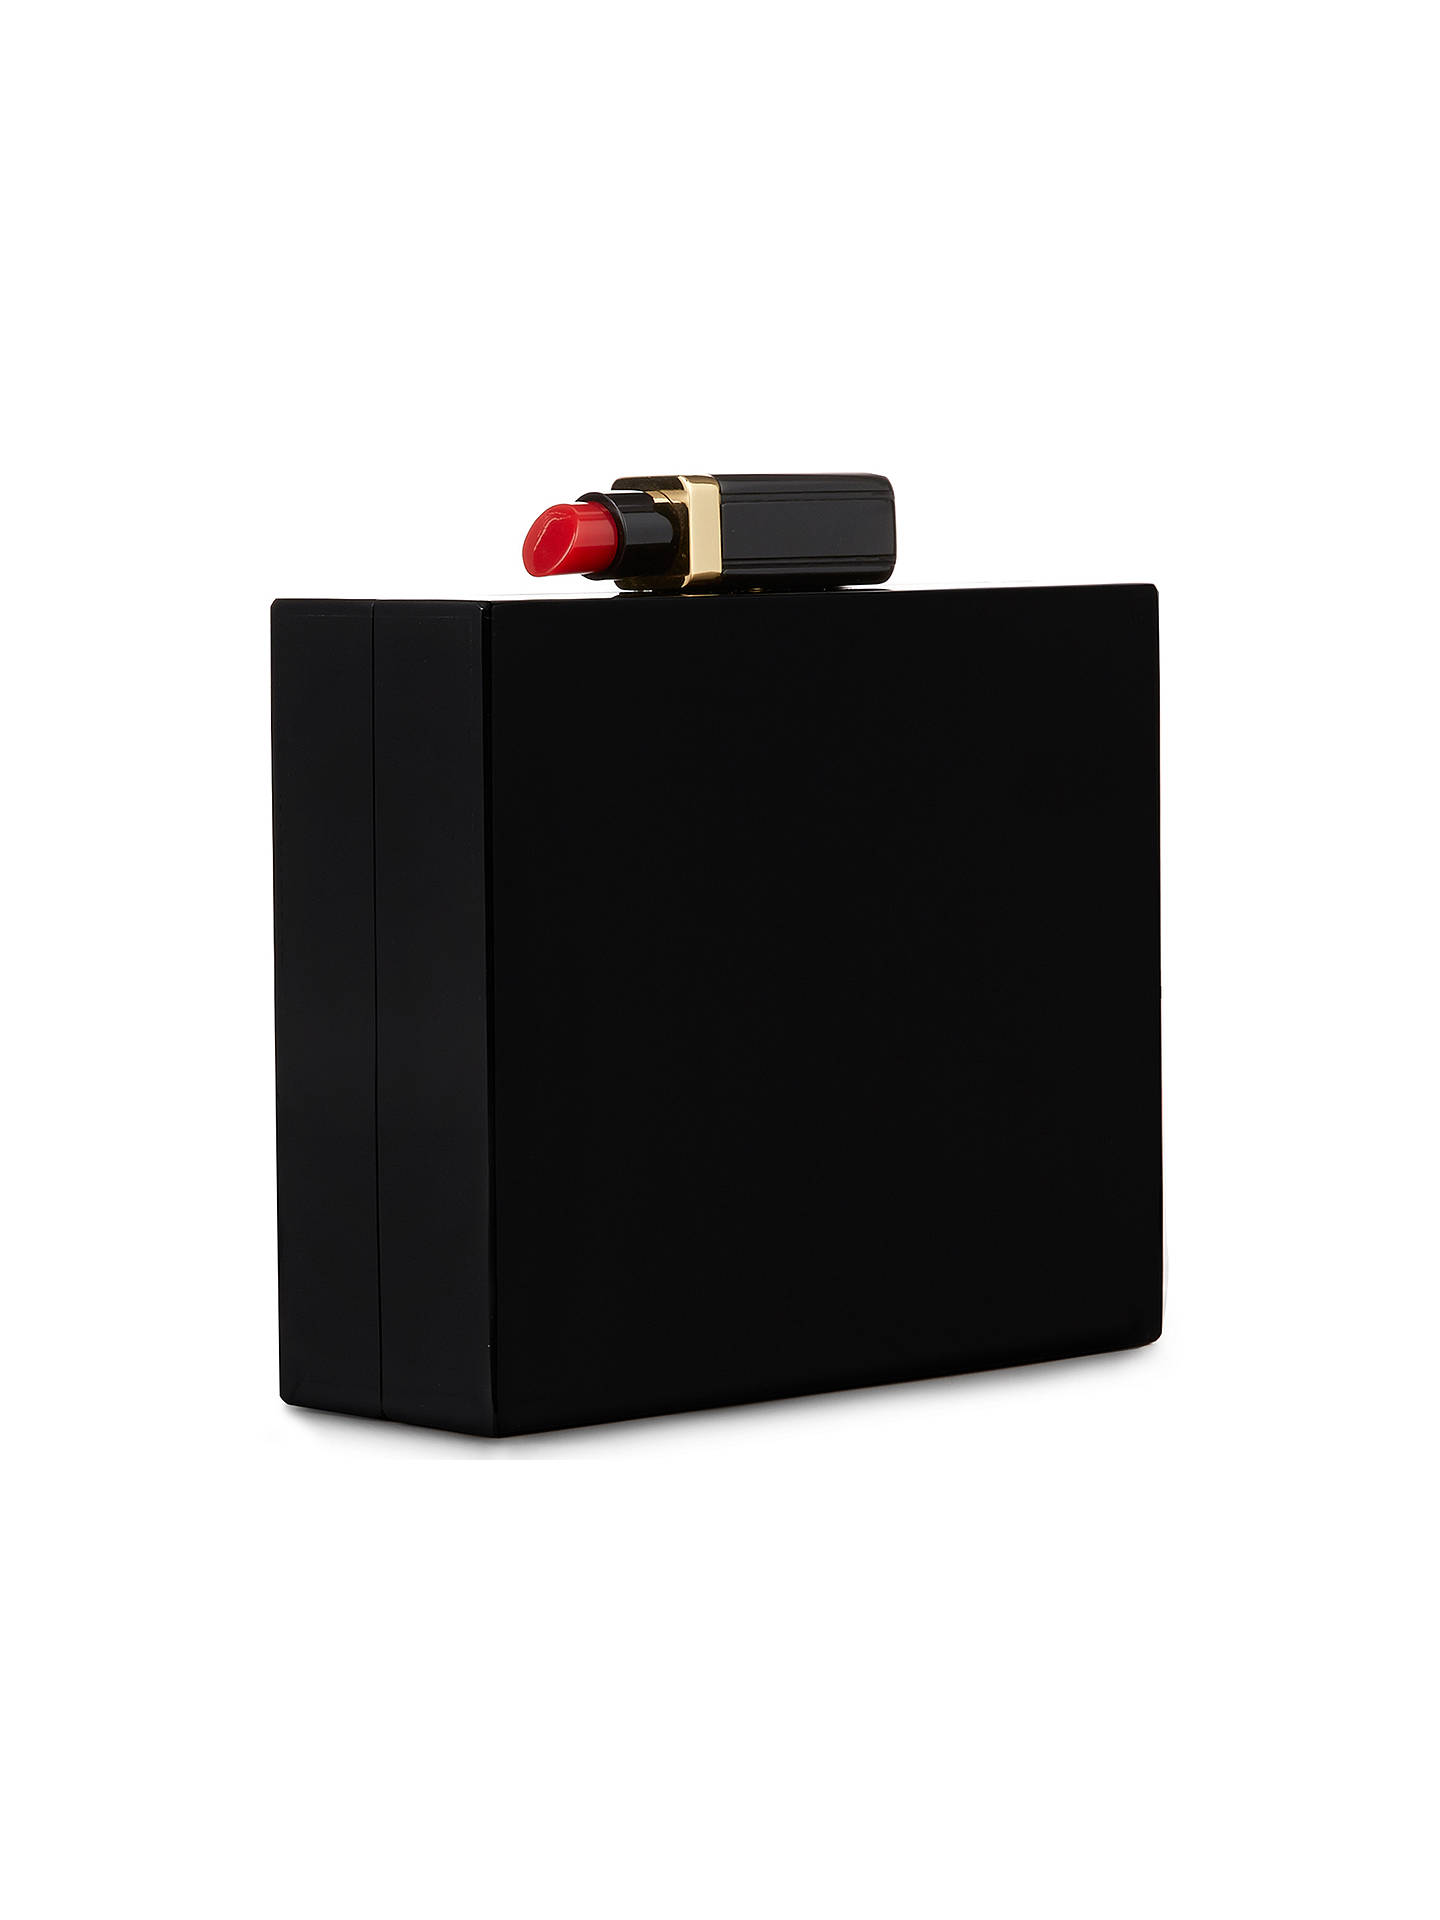 a76d24d4070 ... Buy Lulu Guinness Chloe Perspex Box Clutch, Black Online at  johnlewis.com ...